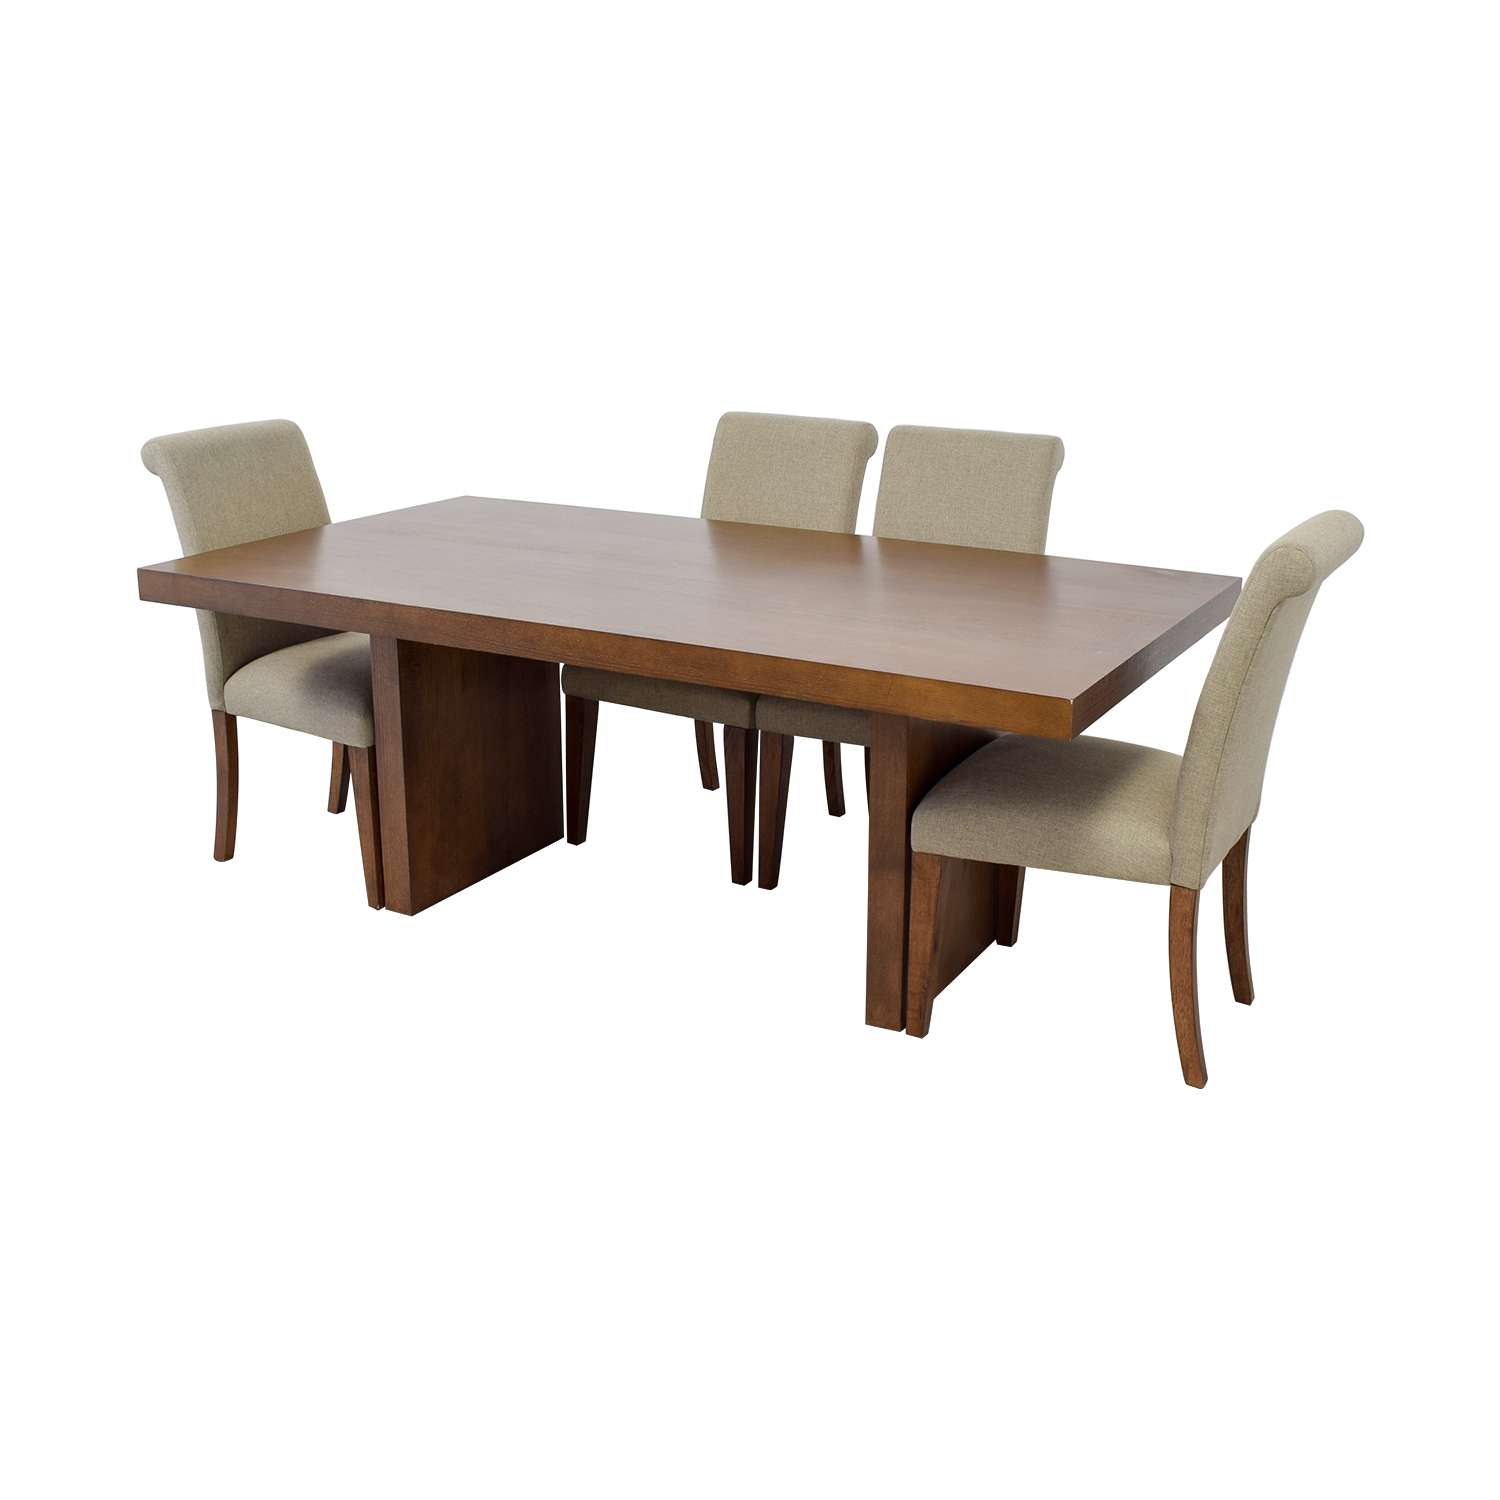 Macy's Macy's Wood Dining Set with Upholstered Chairs on sale